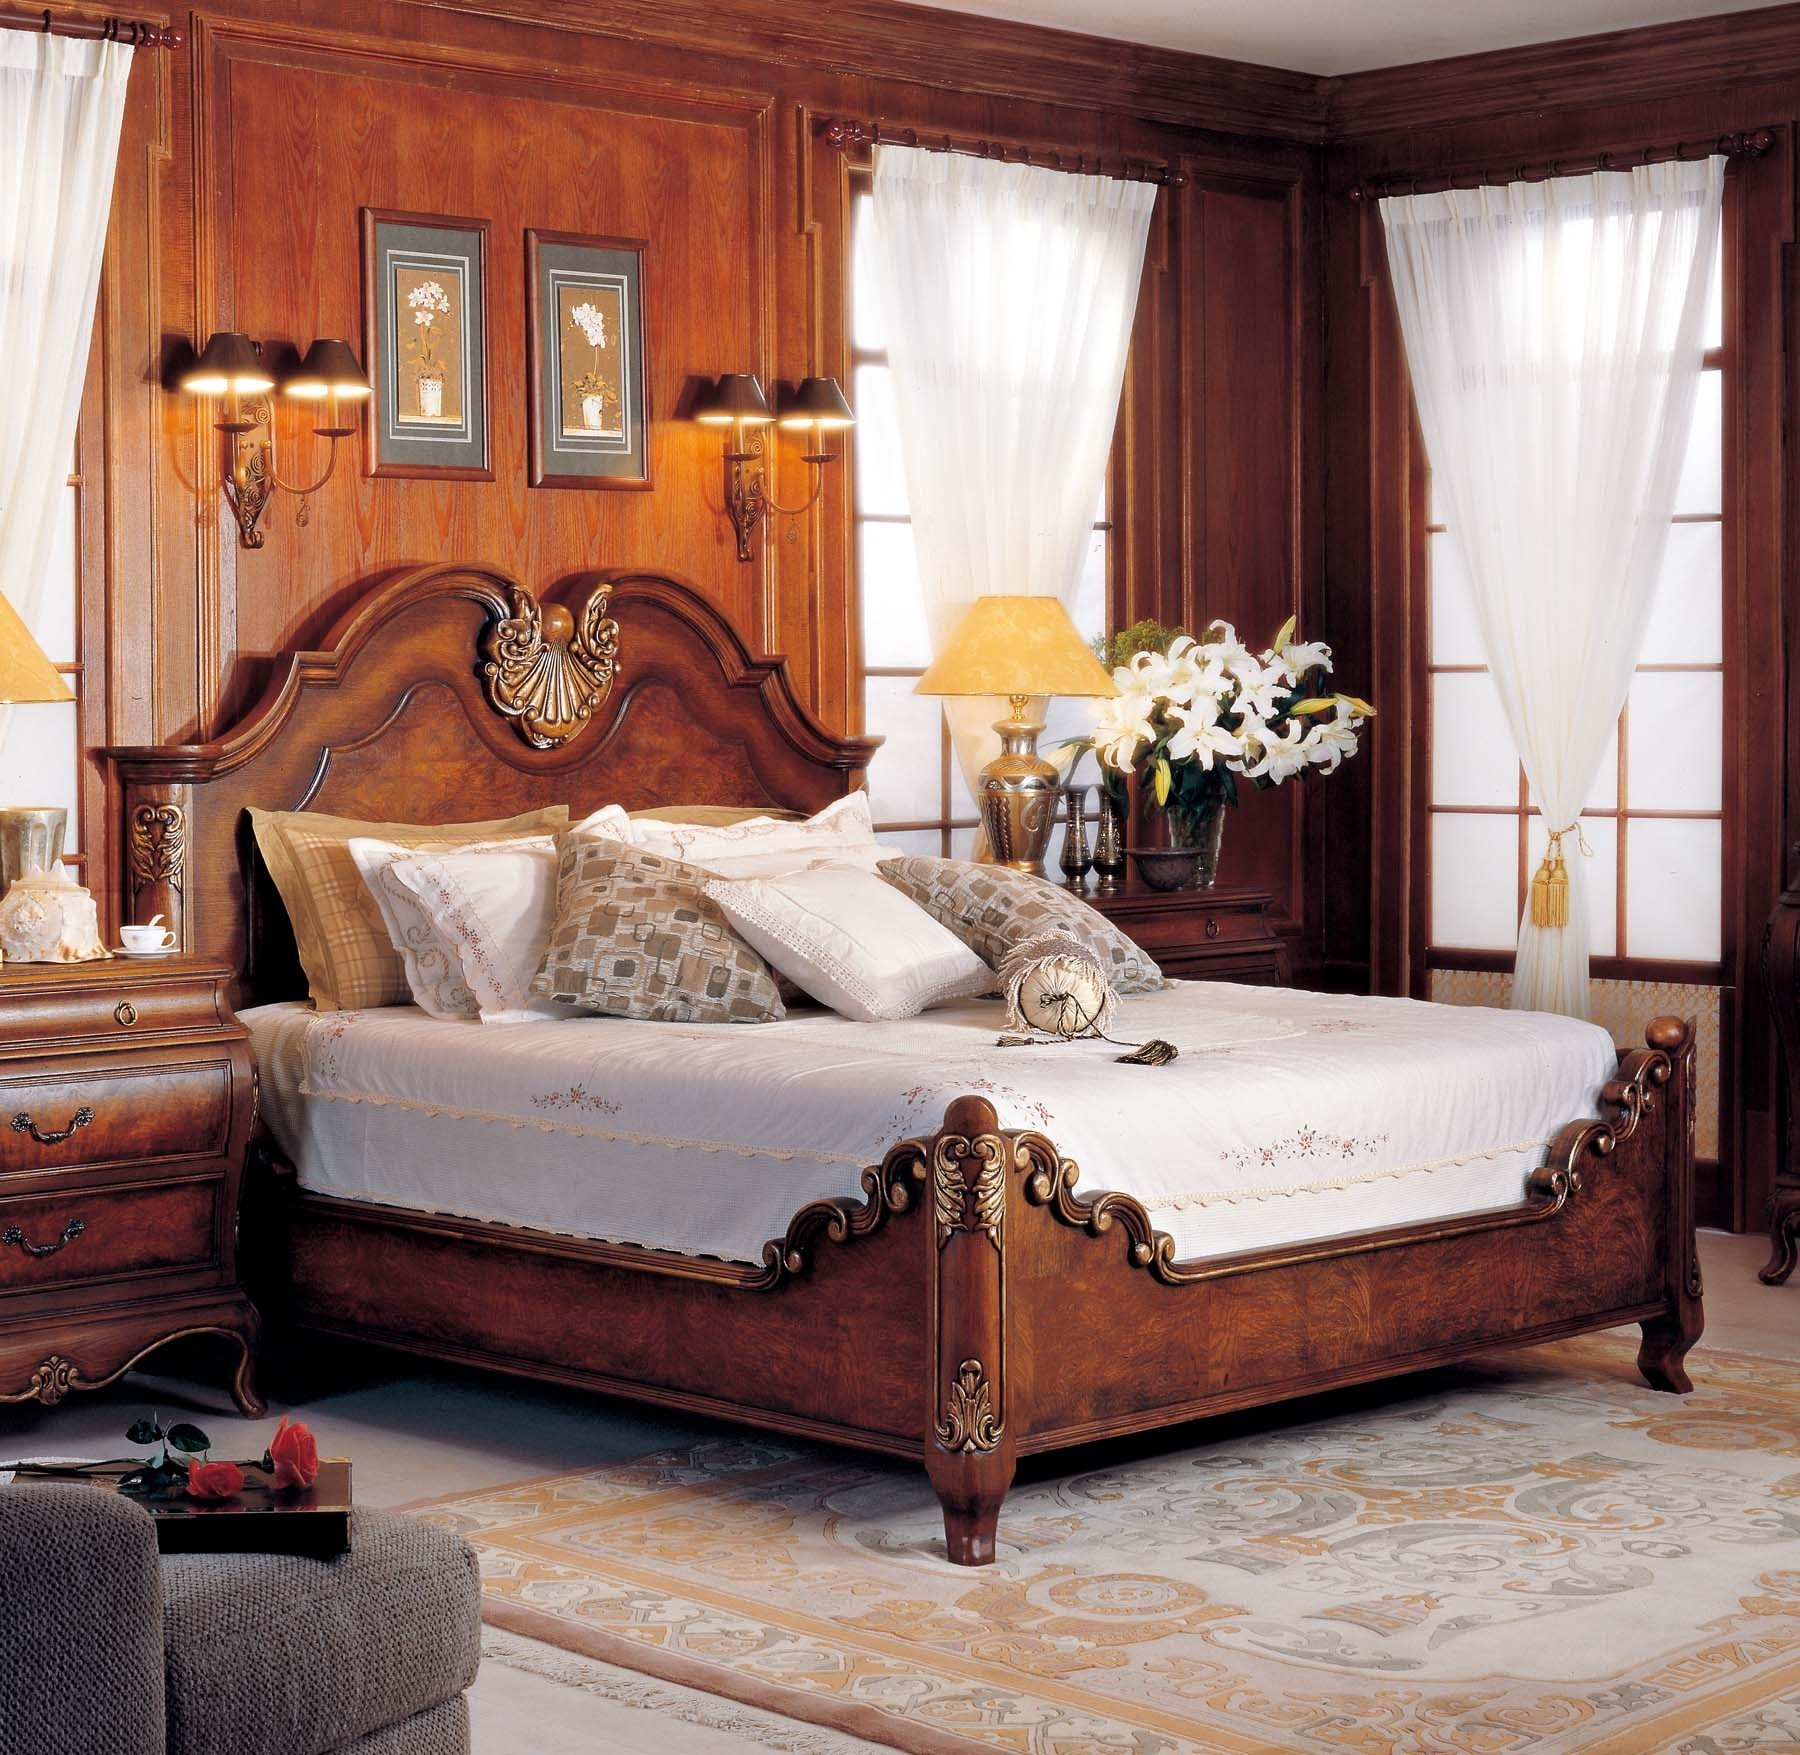 Windsor Bed shown in Mahogany finish